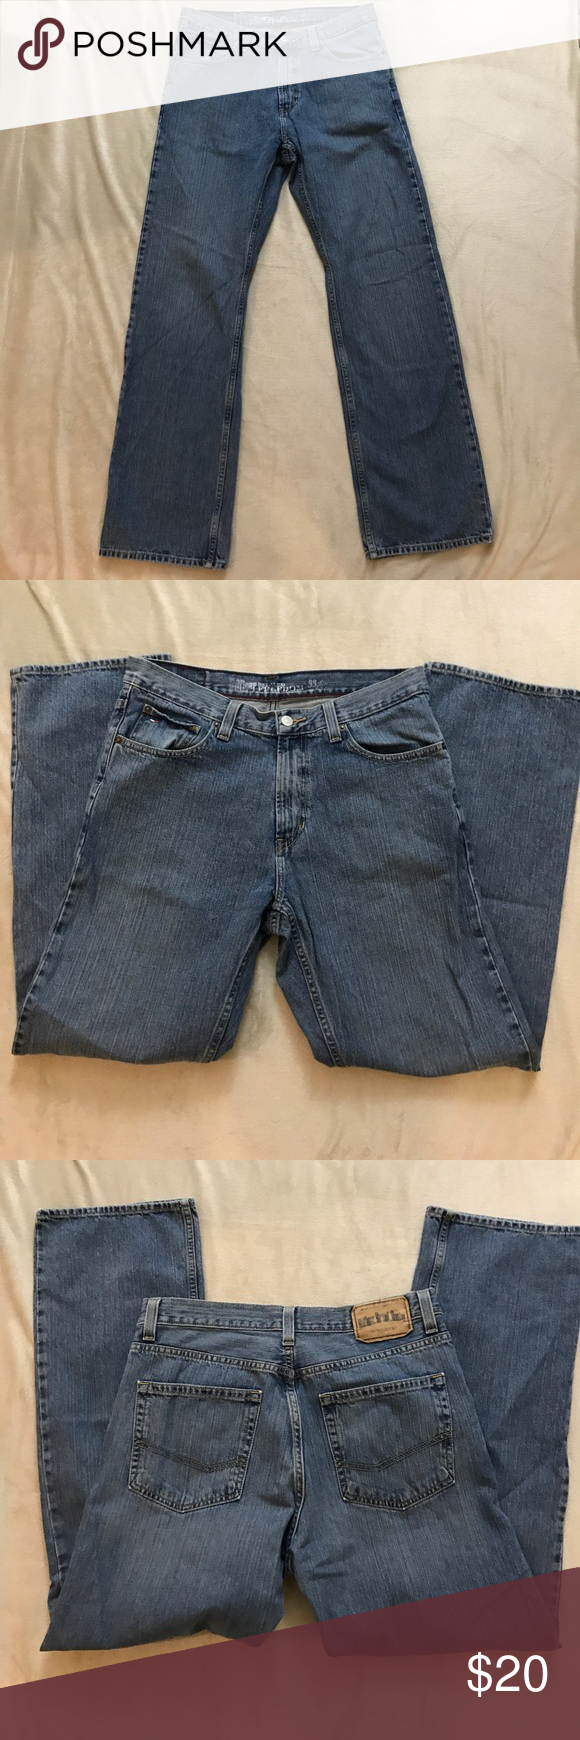 Tommy Hilfiger Relaxed Freedom Jeans 33x32 In great condition Tommy Hilfiger Jeans Relaxed